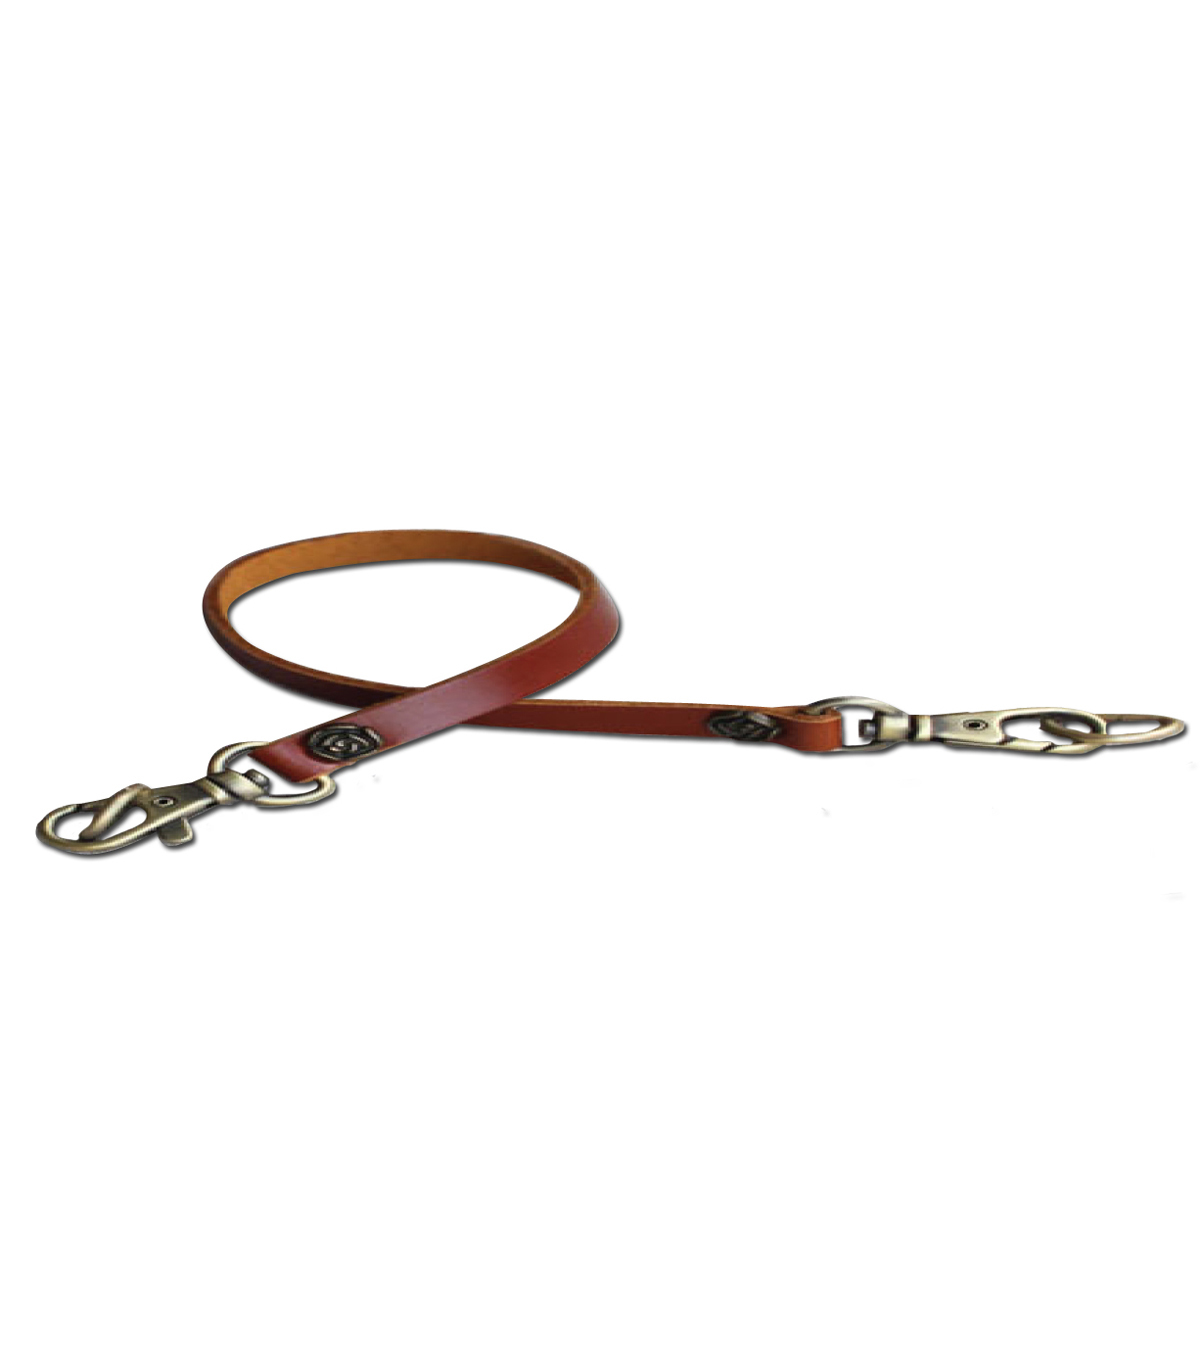 Blumenthal Purse-N-Alize Hanging Buckle Handle